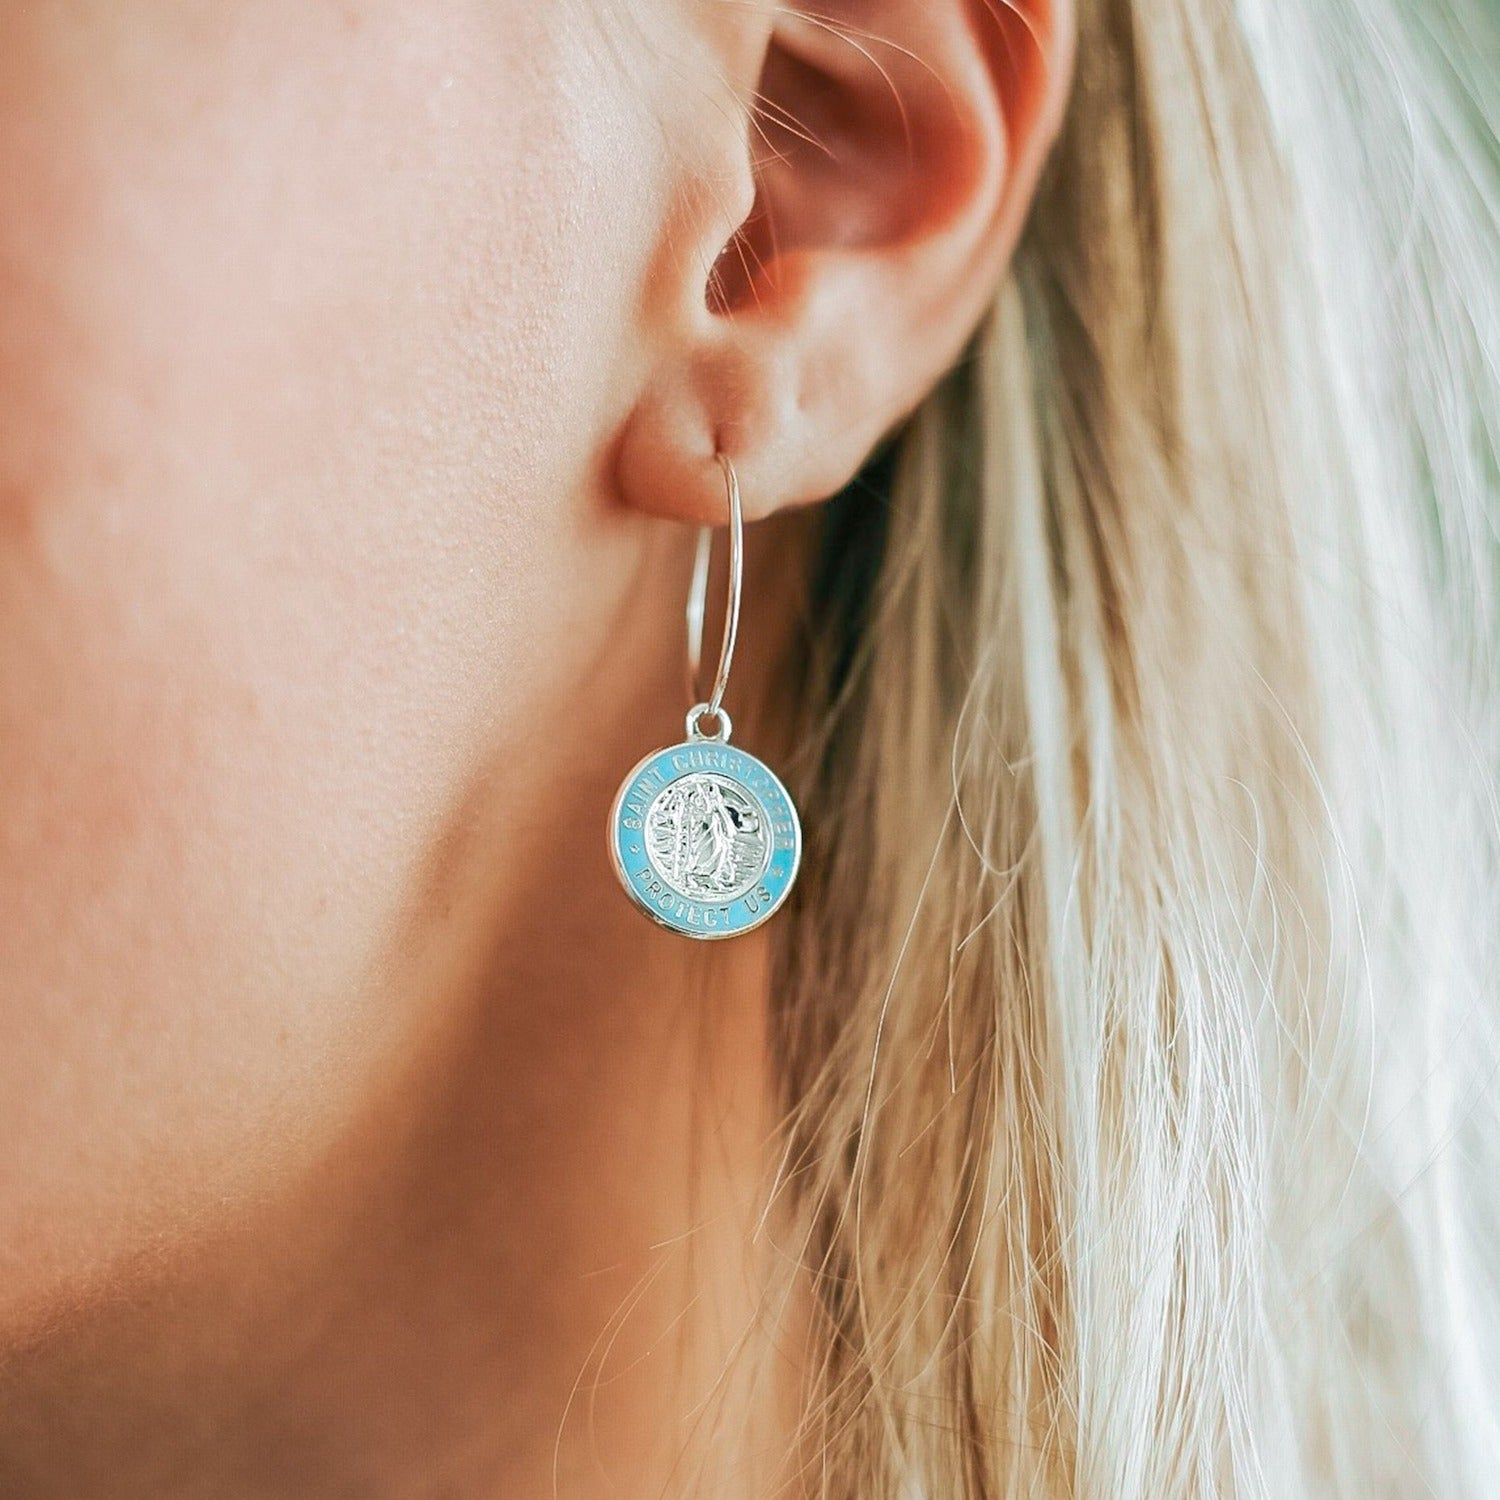 Hoop Earrings - Silver / Baby Blue 2